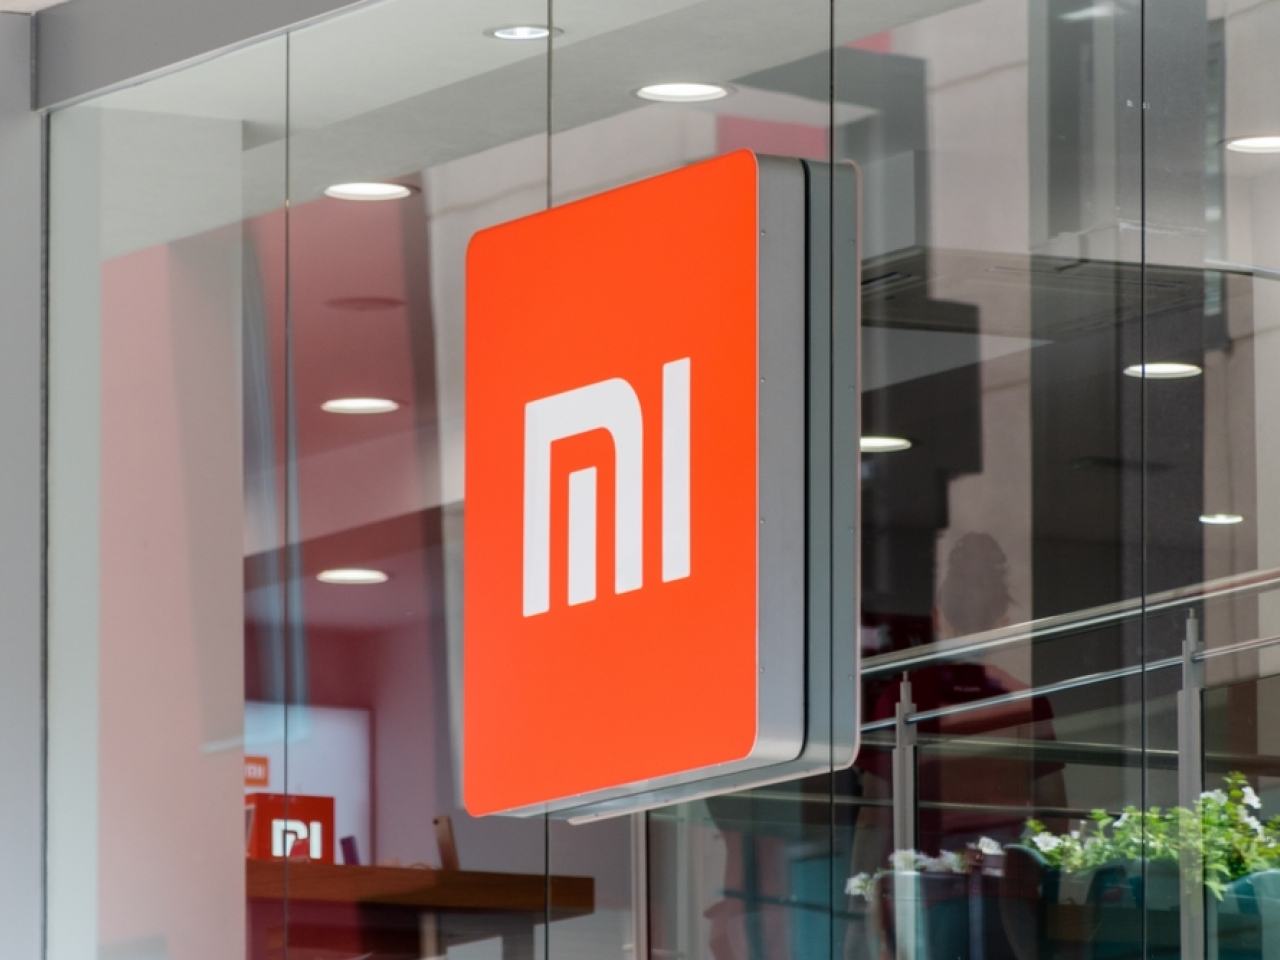 Xiaomi surged to become the best blue-chip performer on Friday, after it surpassed Apple as the second largest smartphone maker by global shipment. Image: Shutterstock